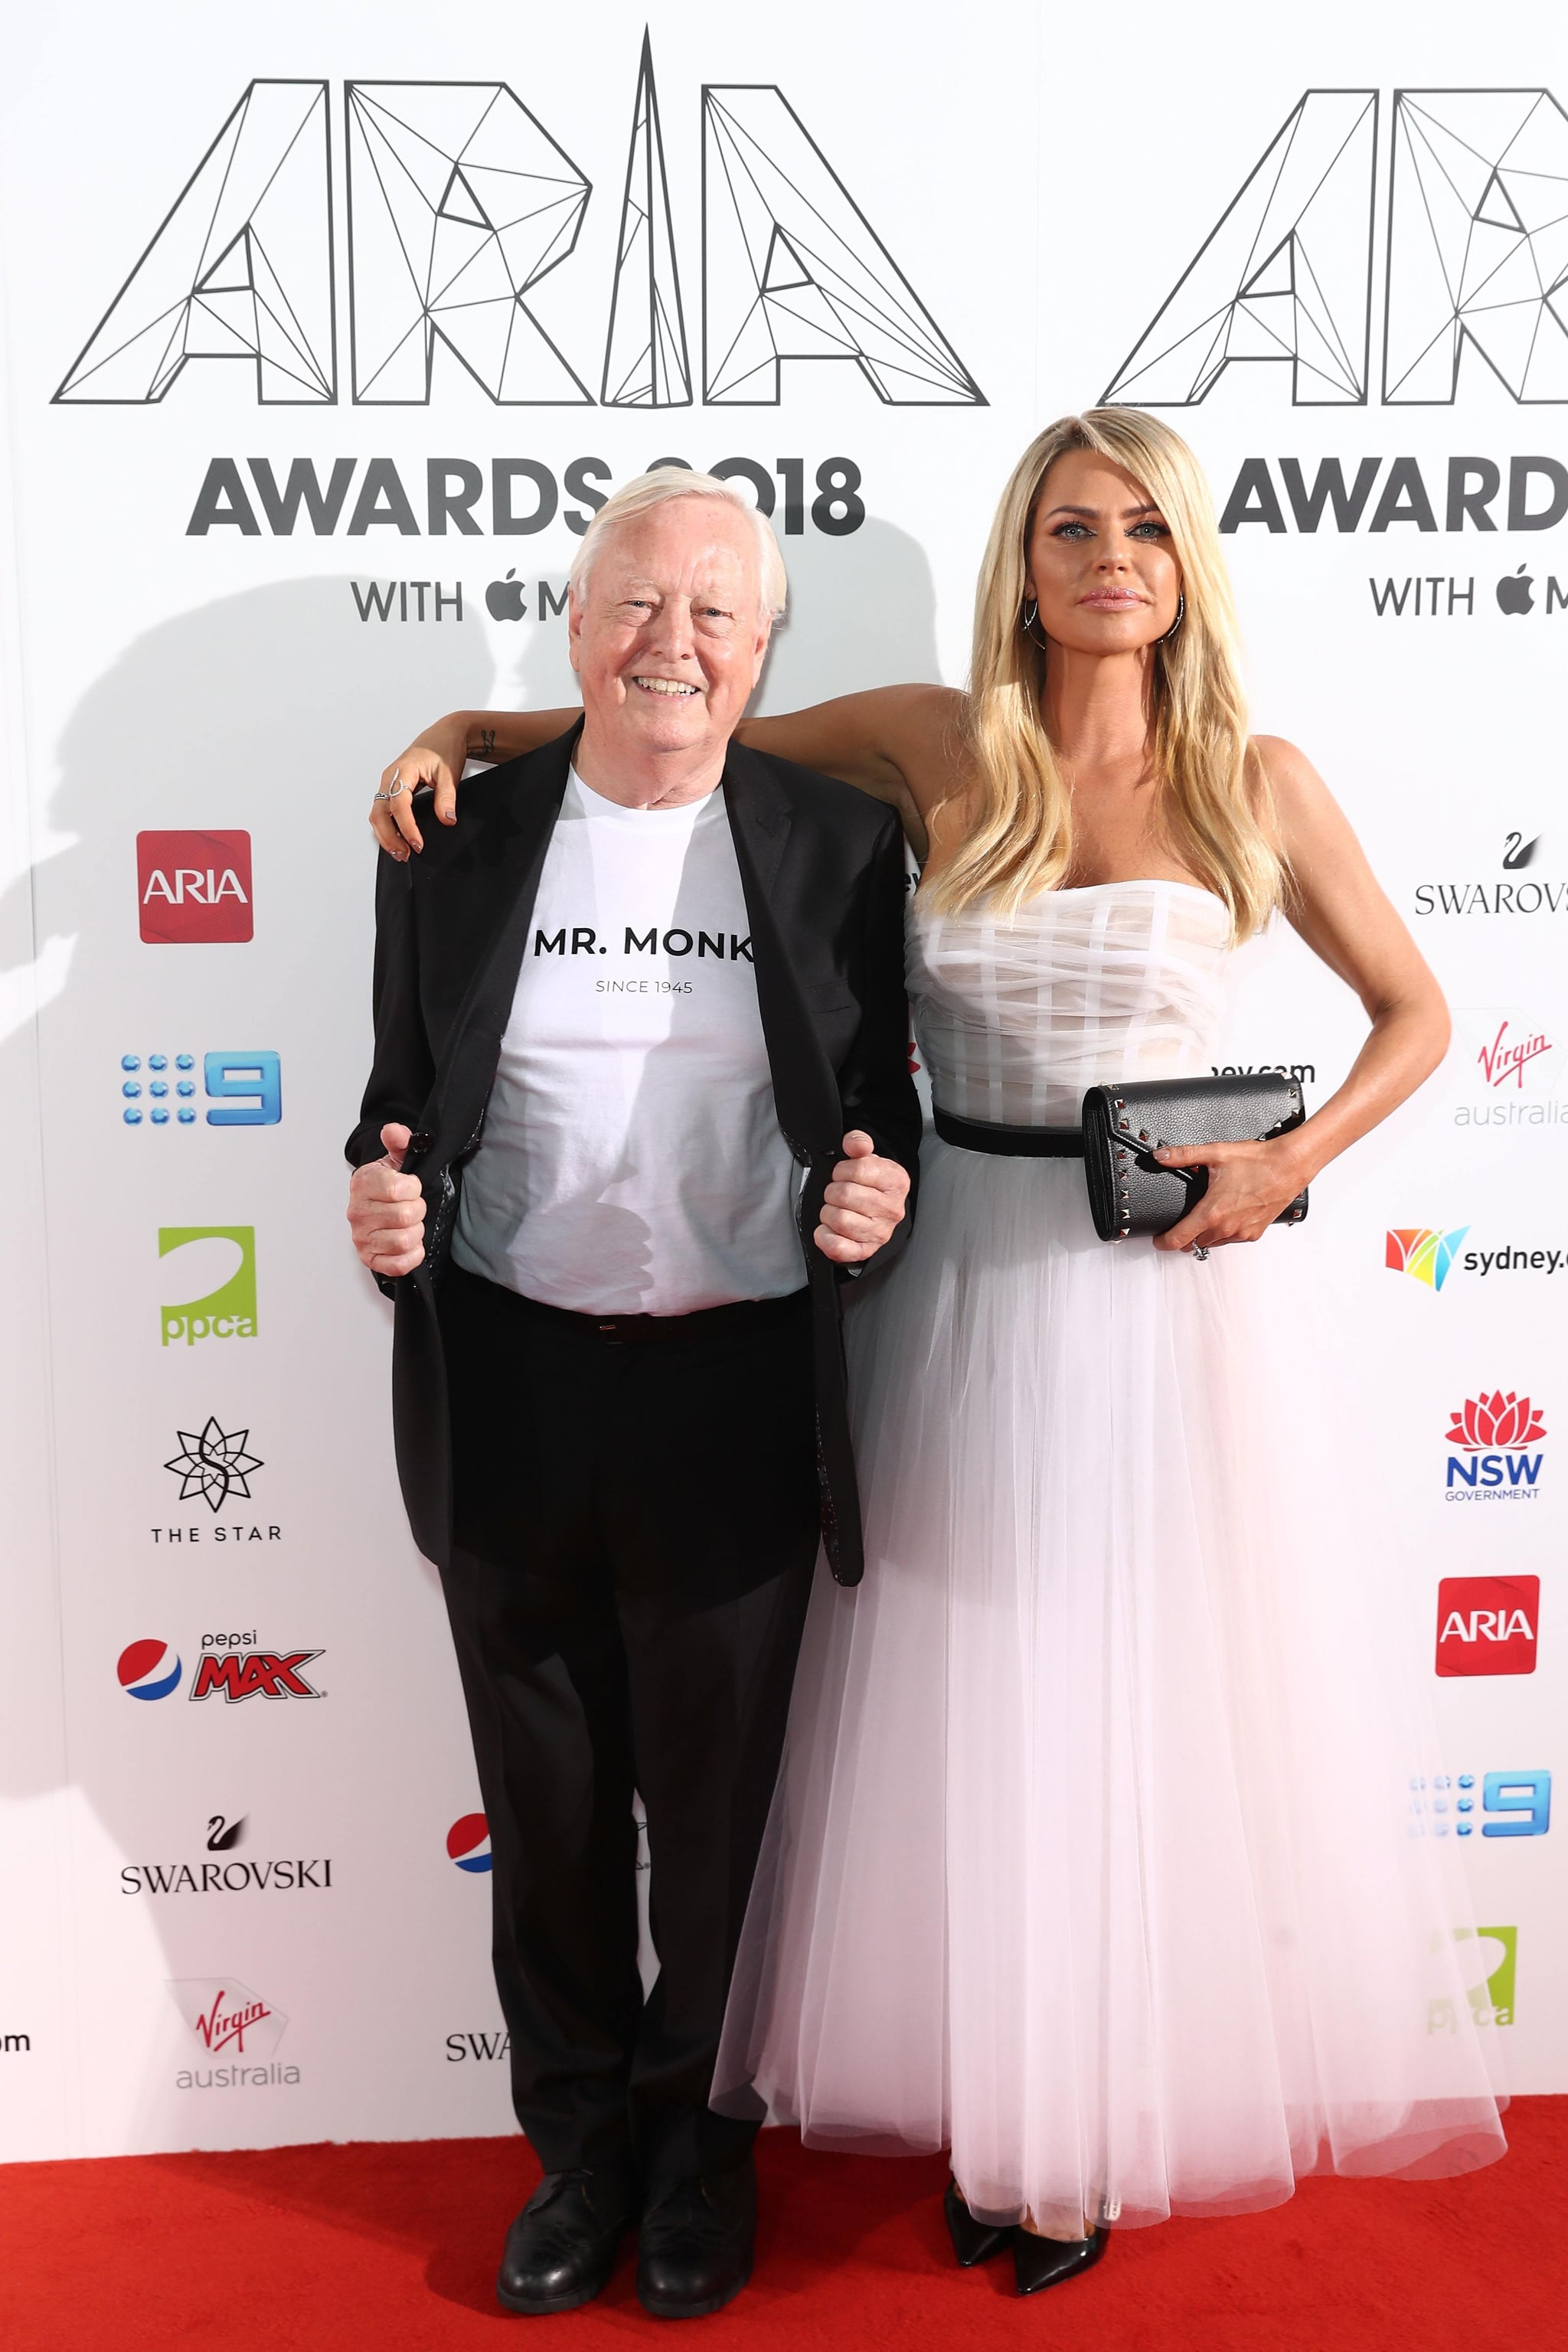 The ARIA Awards Red Carpet Is Proof That Australian Men Struggle With Fashion